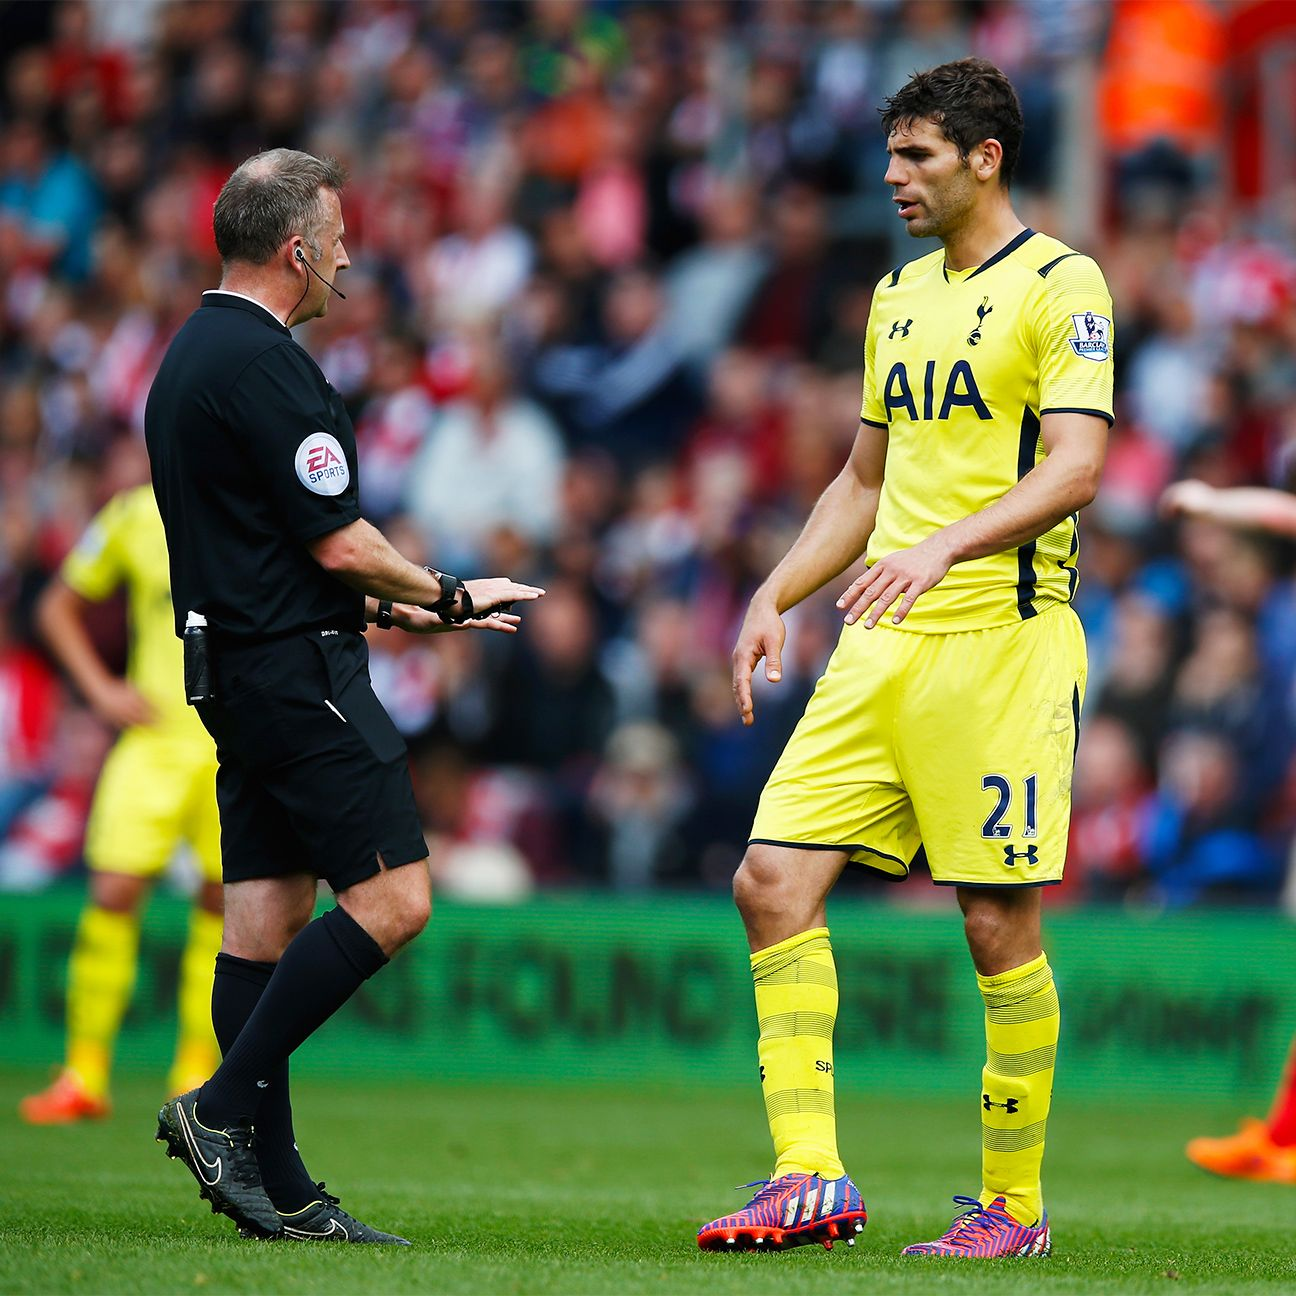 It was a frustrating afternoon all-round for Spurs defender Federico Fazio.